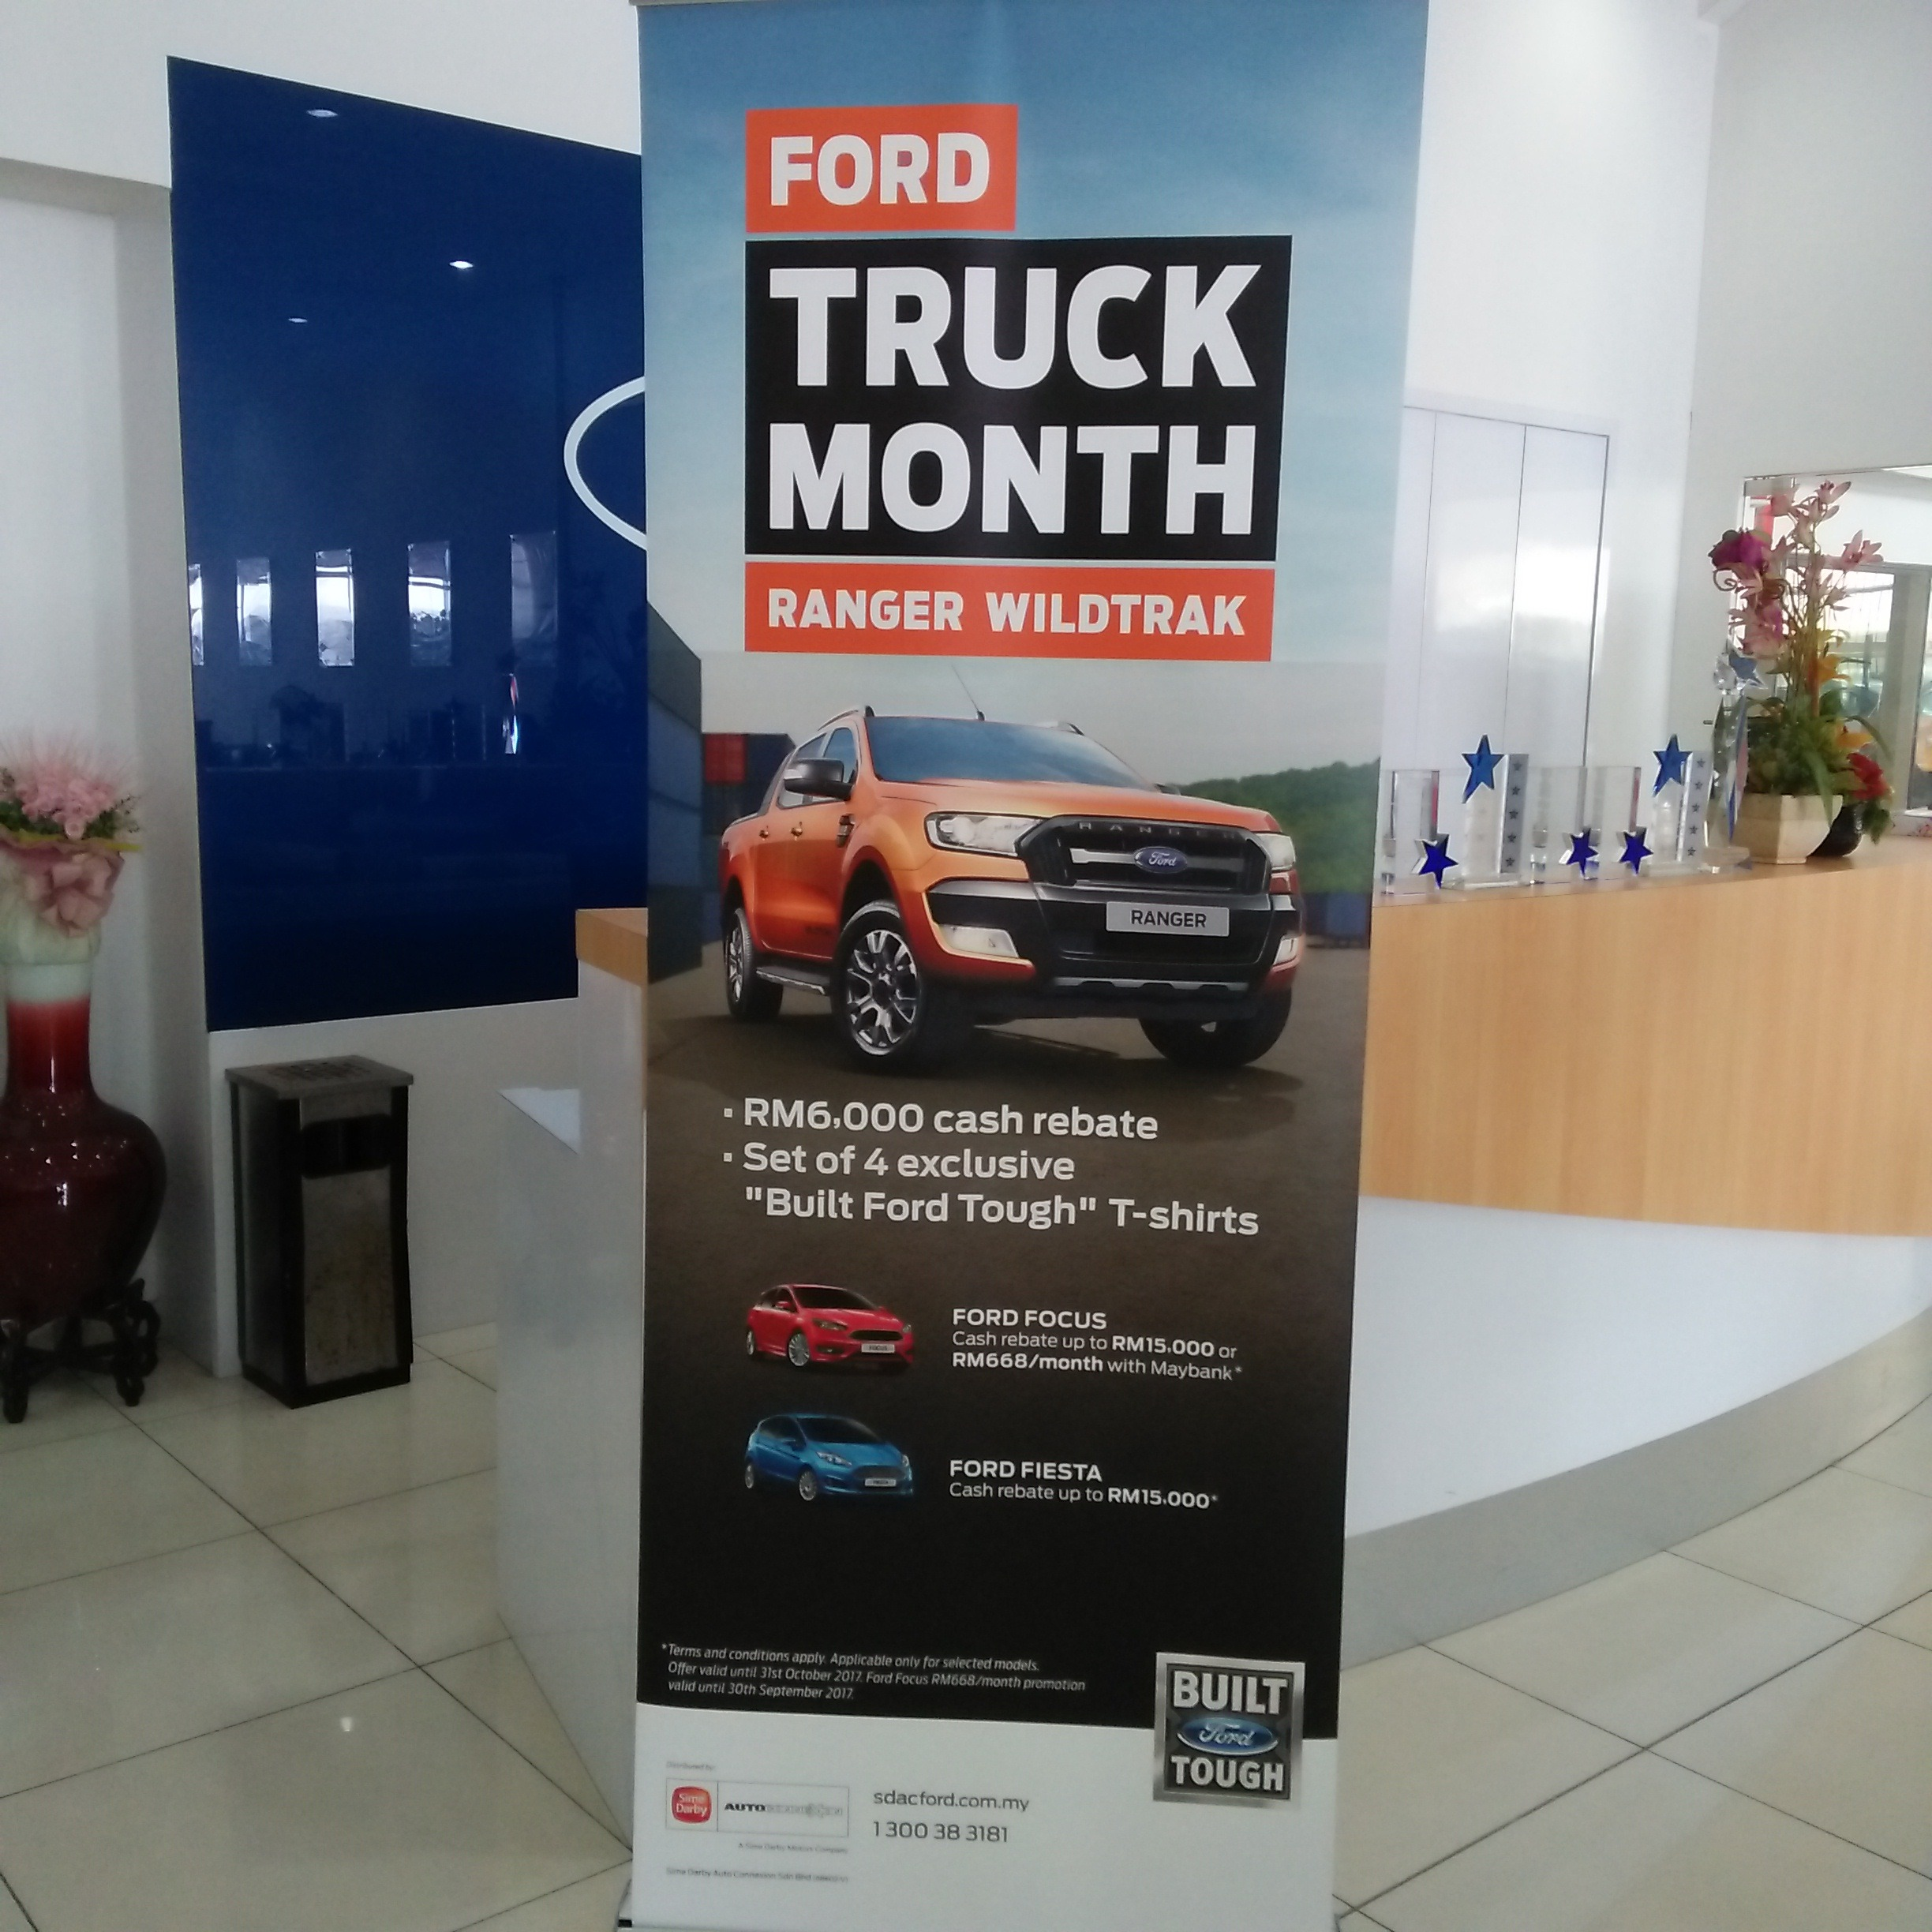 FORD TRUCK MONTH AUGUST